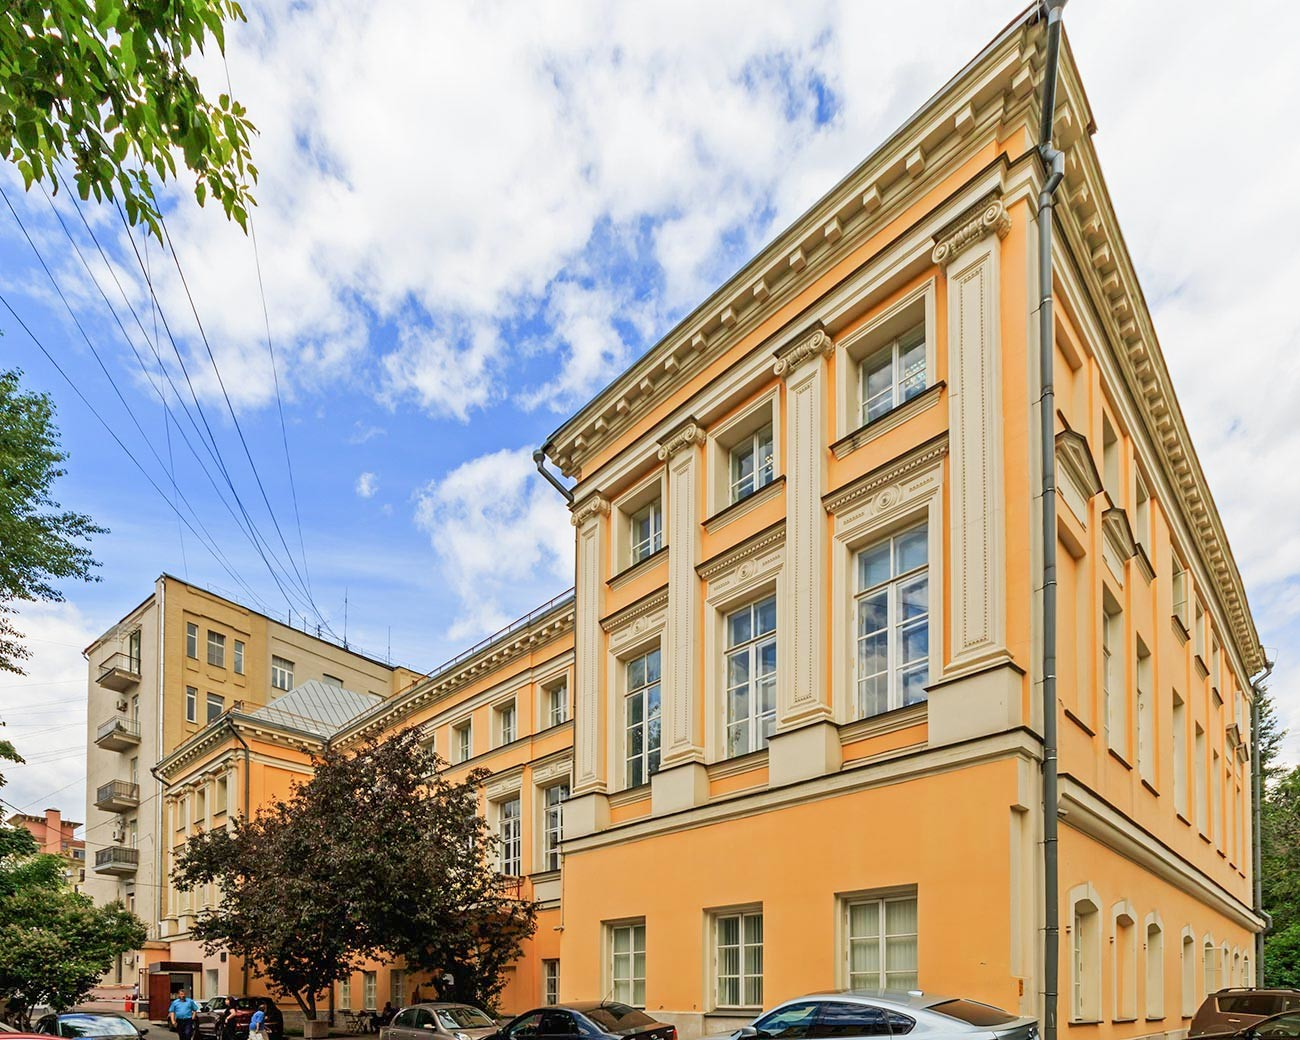 House of James Bruce (Bryusov Lane)